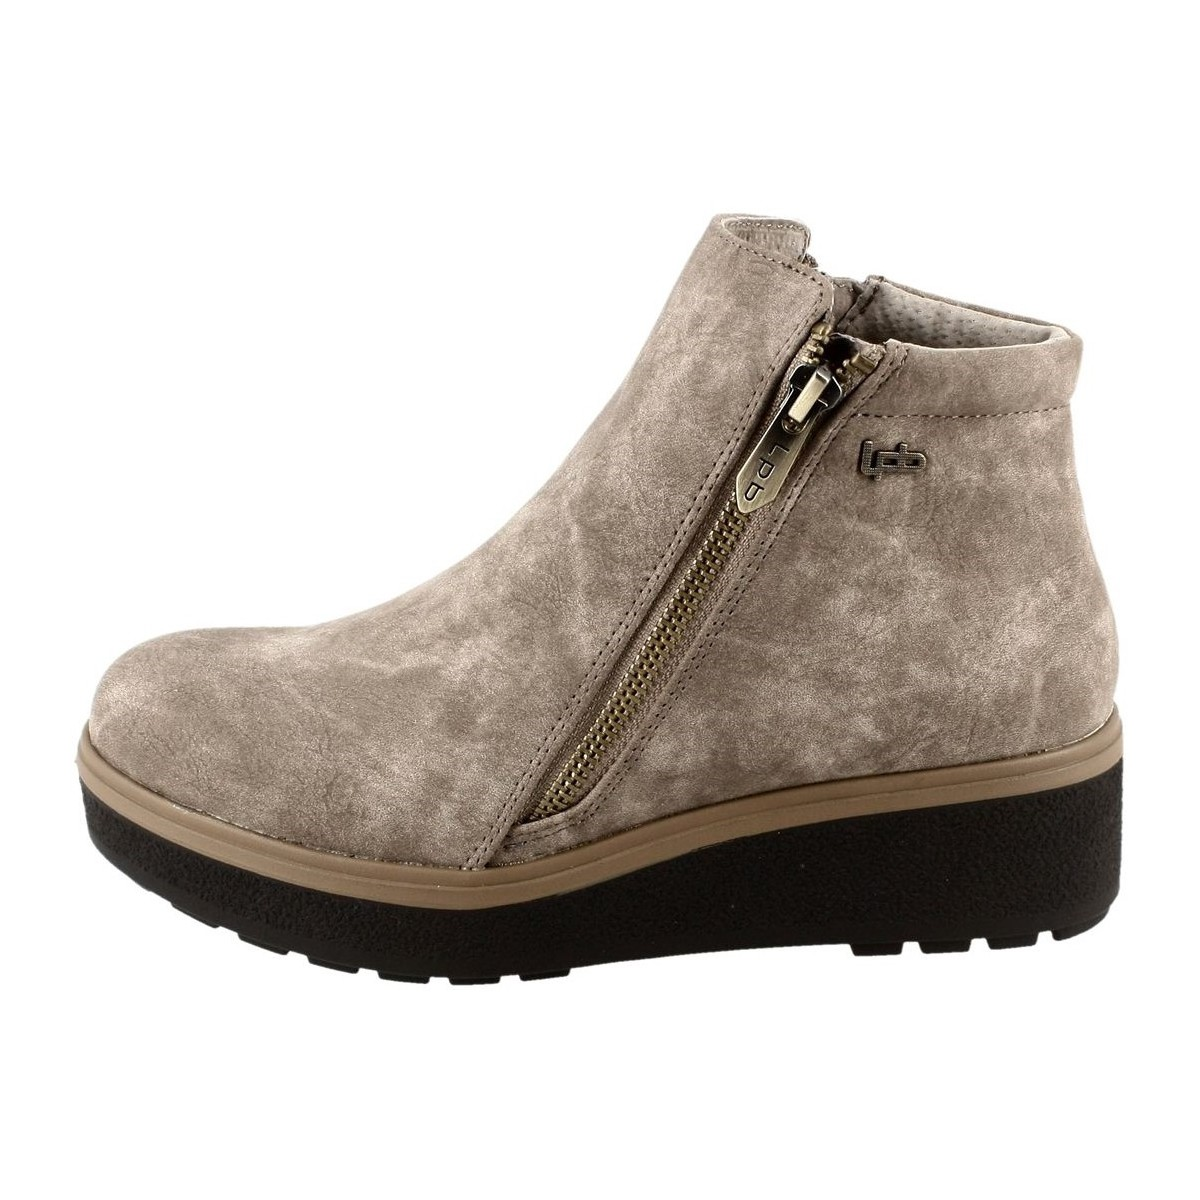 Les p 39 tites bombes buddy beige chaussures low boots for Portefeuille les p tites bombes